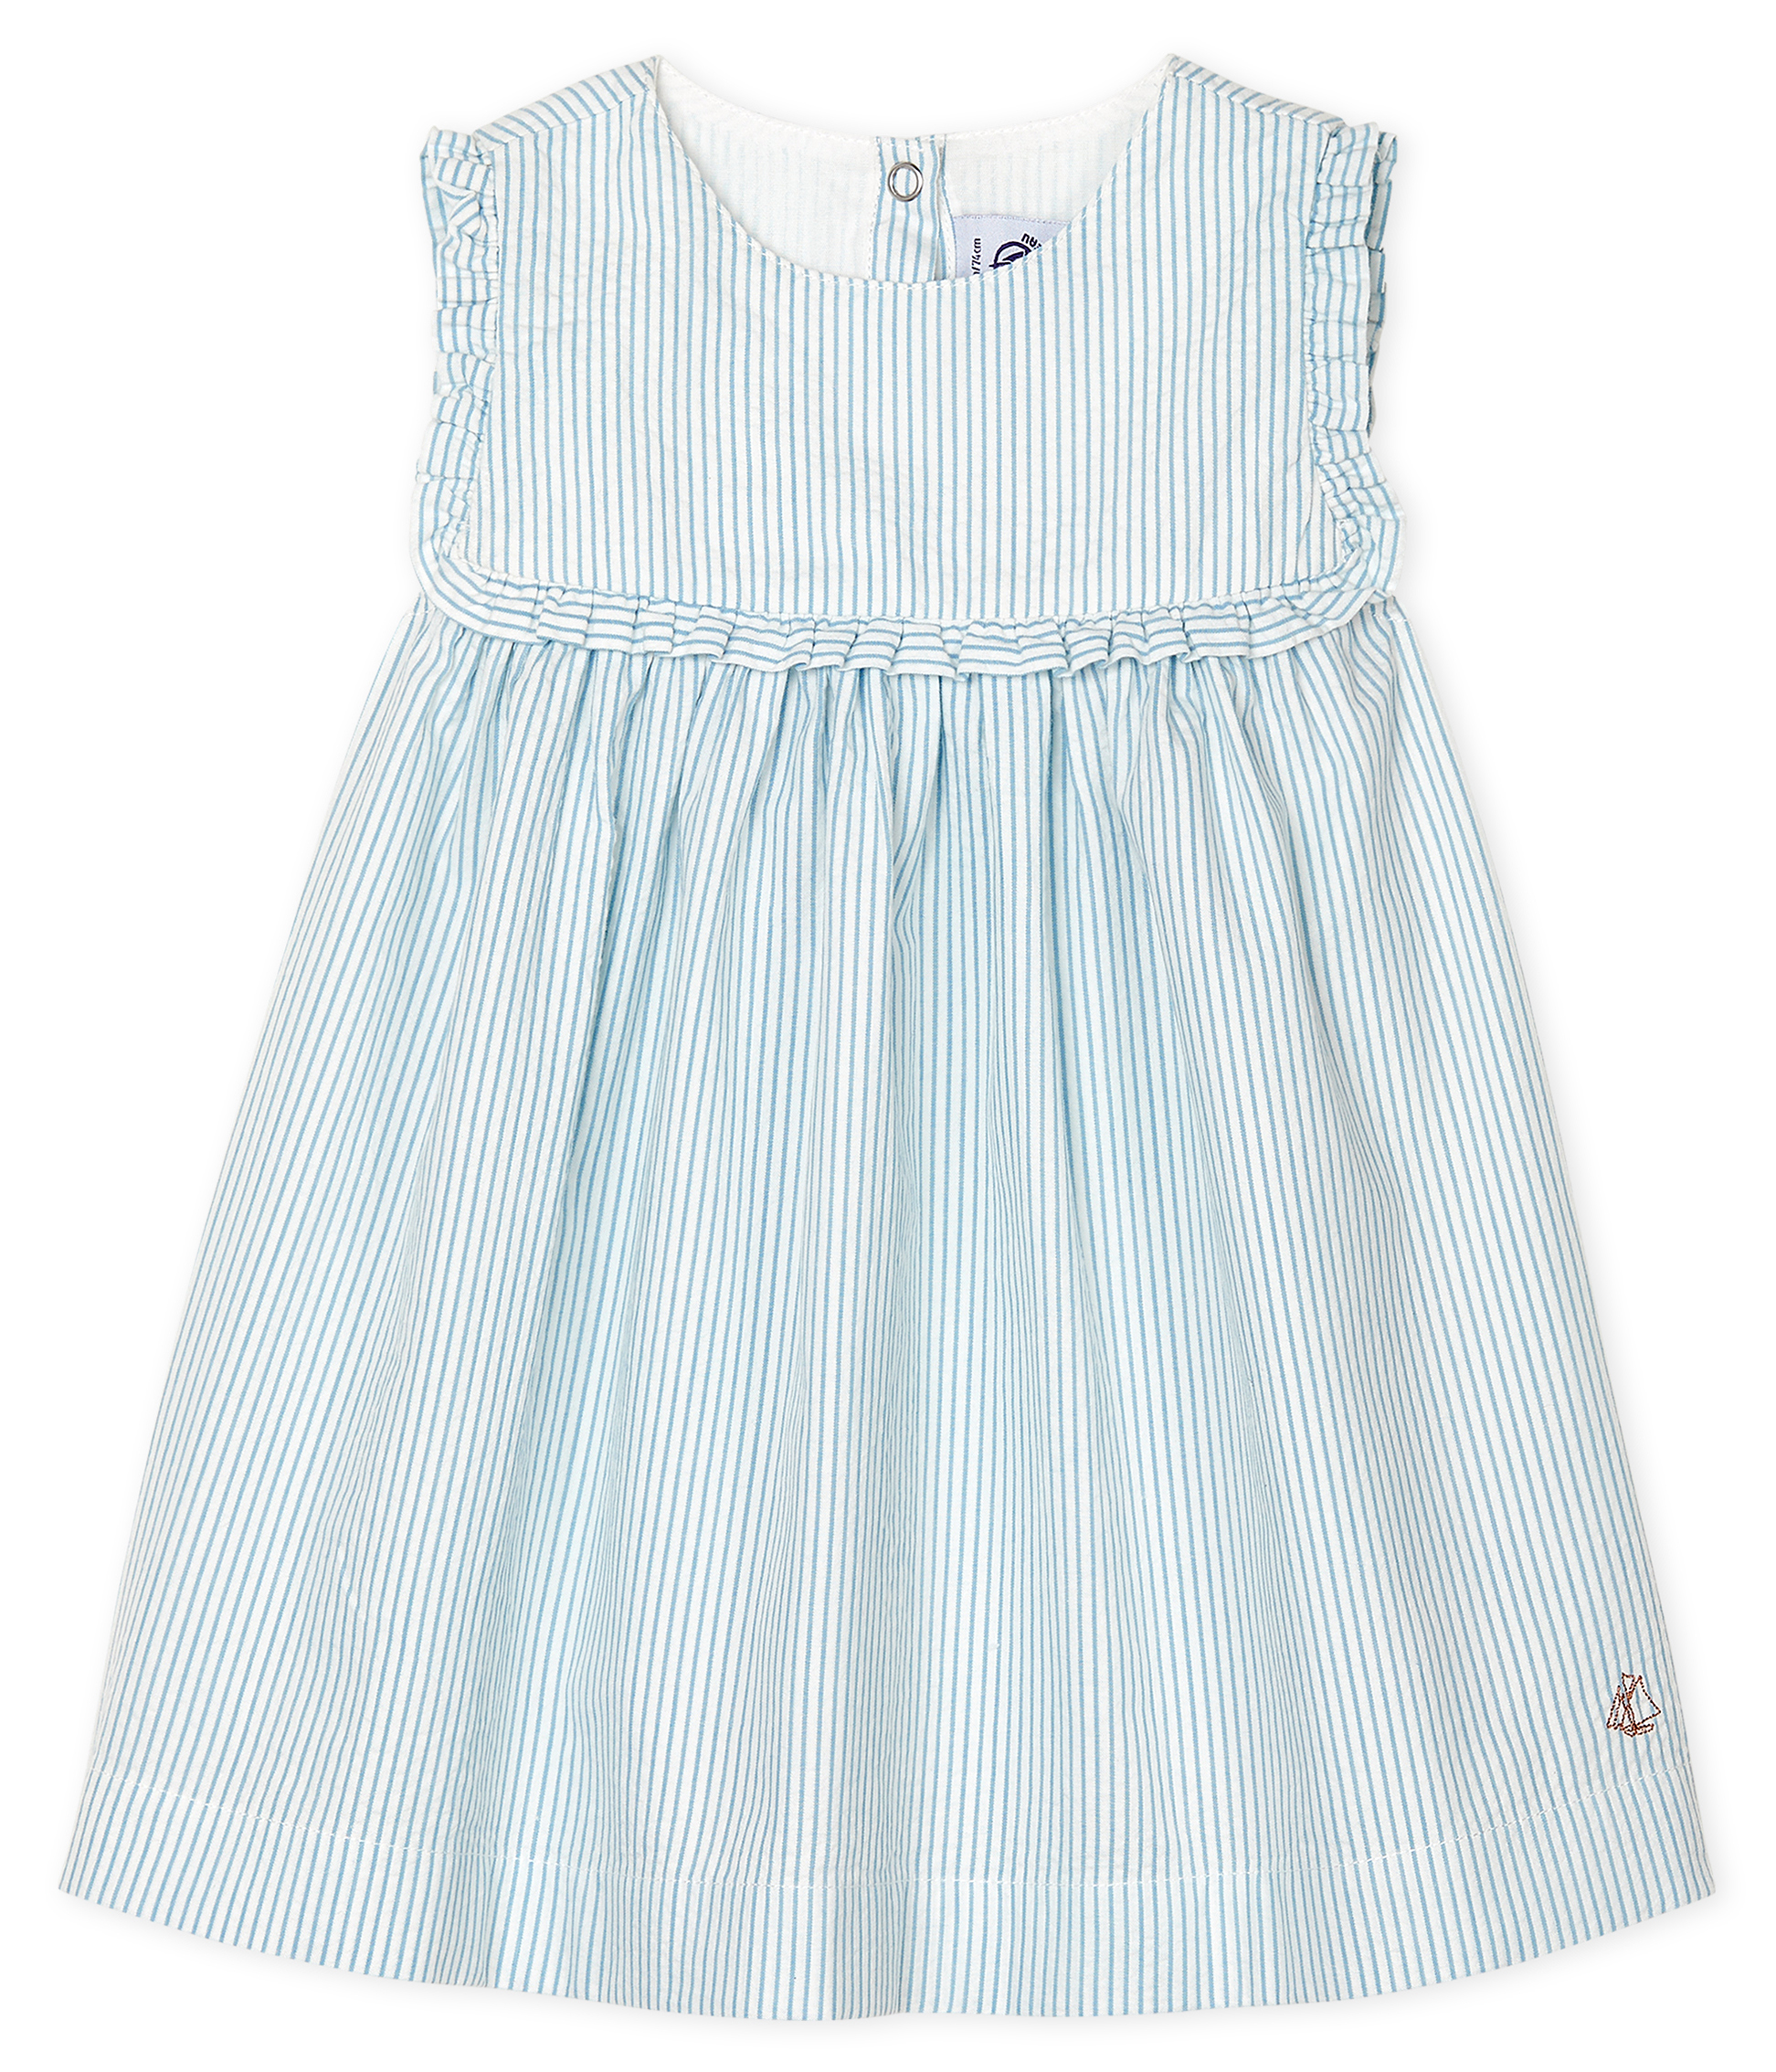 Baby Girls' Sleeveless Striped Dress